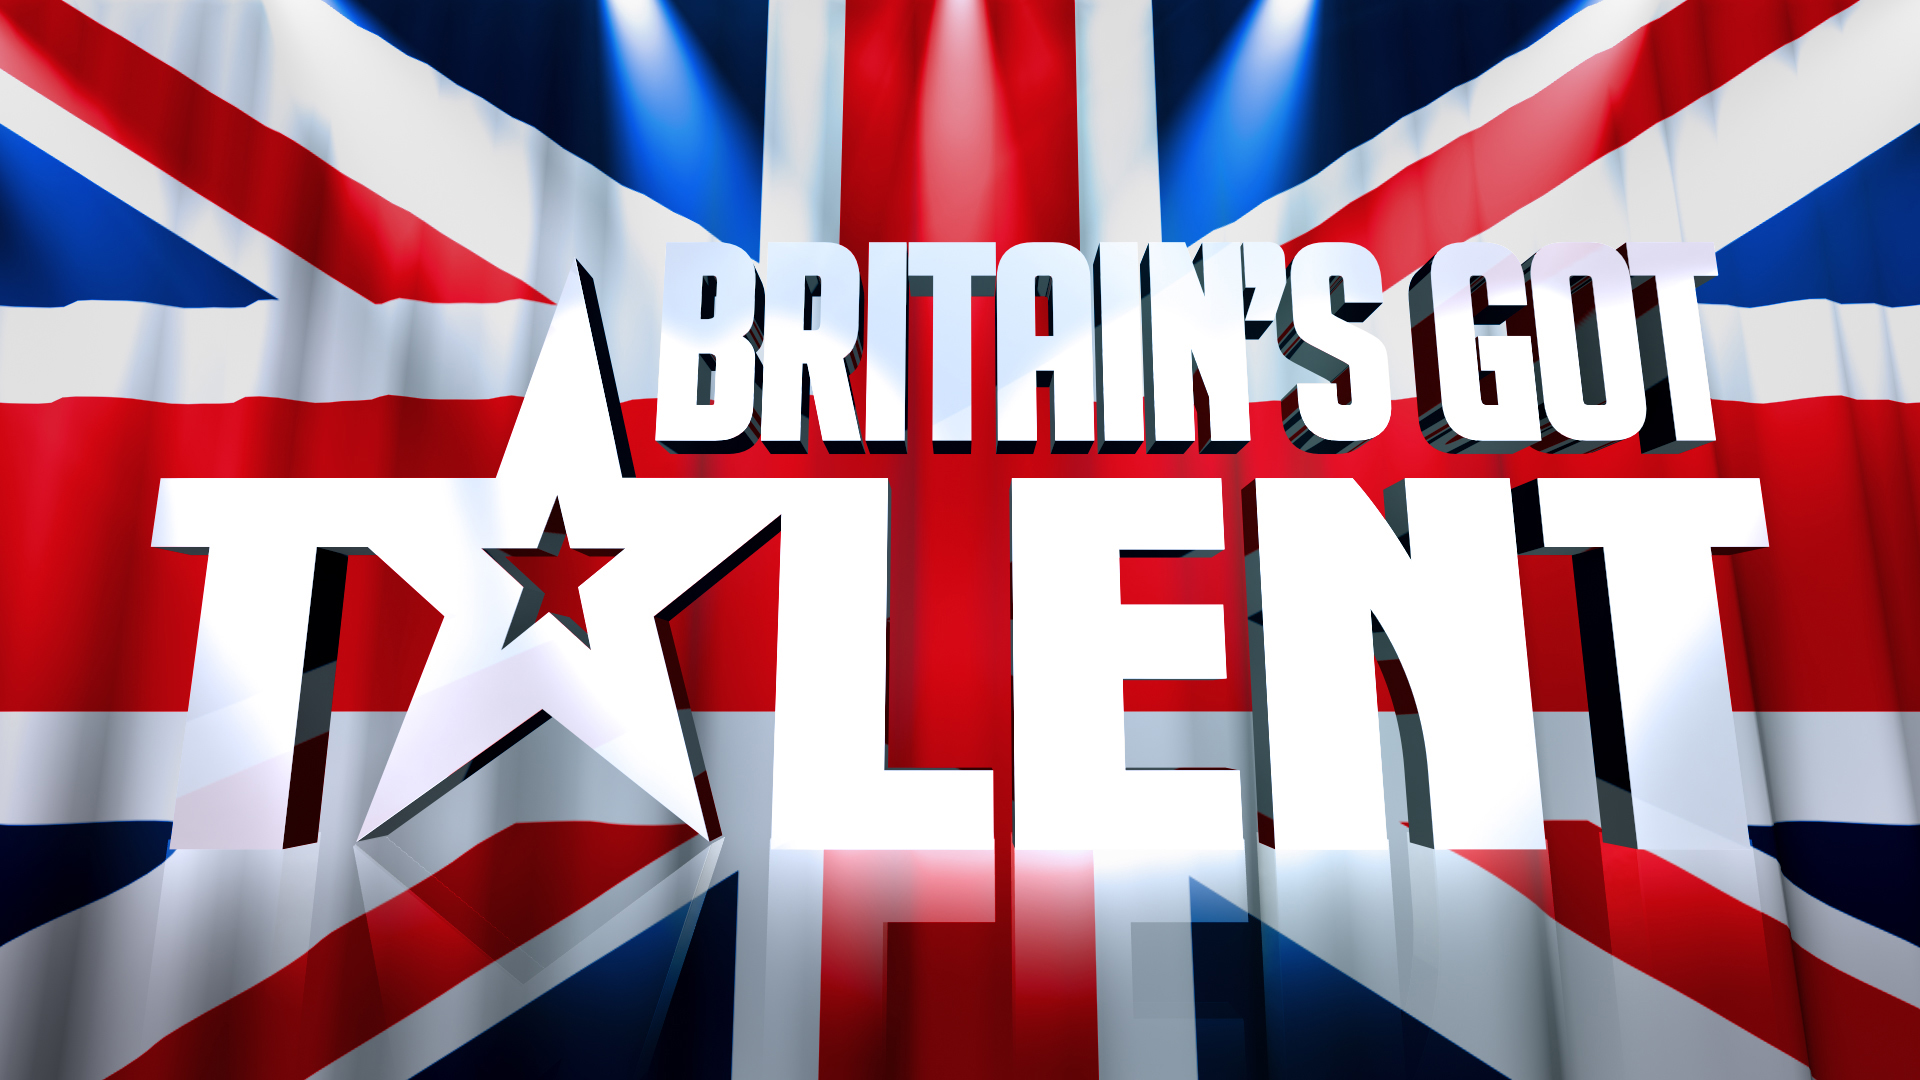 All you need to know about Britain's Got Talent